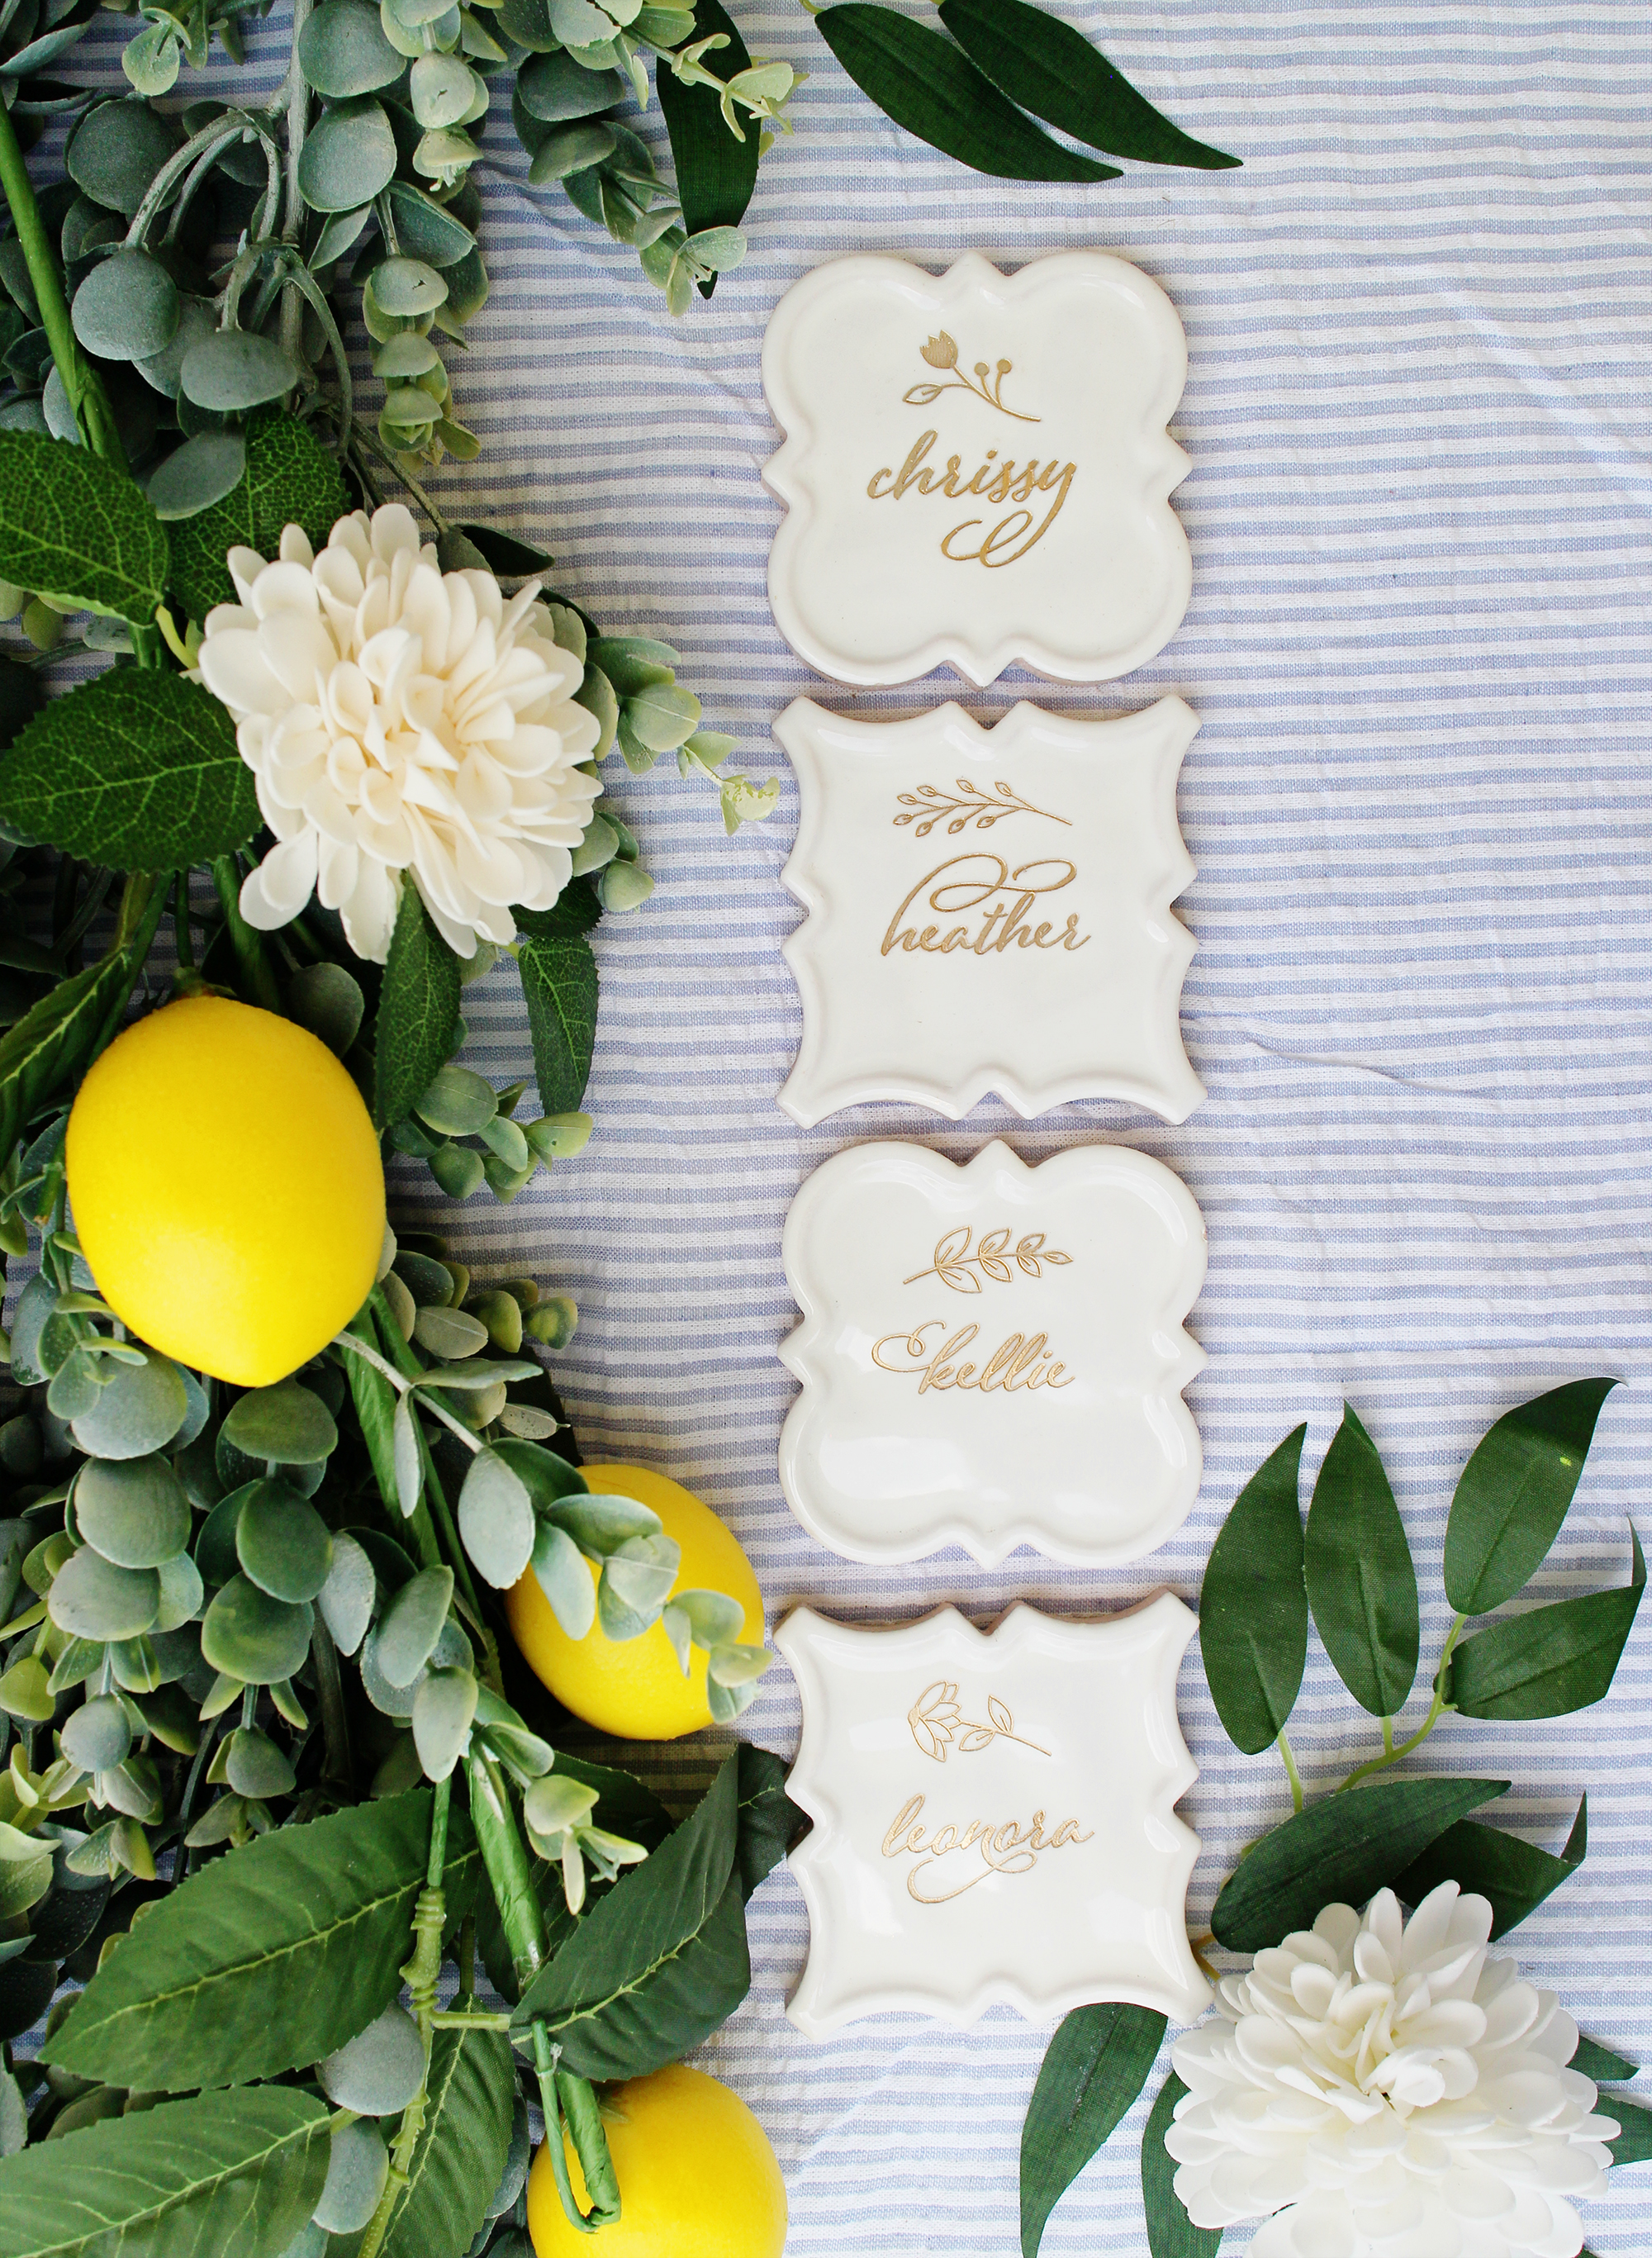 beautiful floral design preppy seersucker southern tile name tags white and gold place card escort card seating chart boho wedding boho bridal shower yellow heart art etsy.jpg